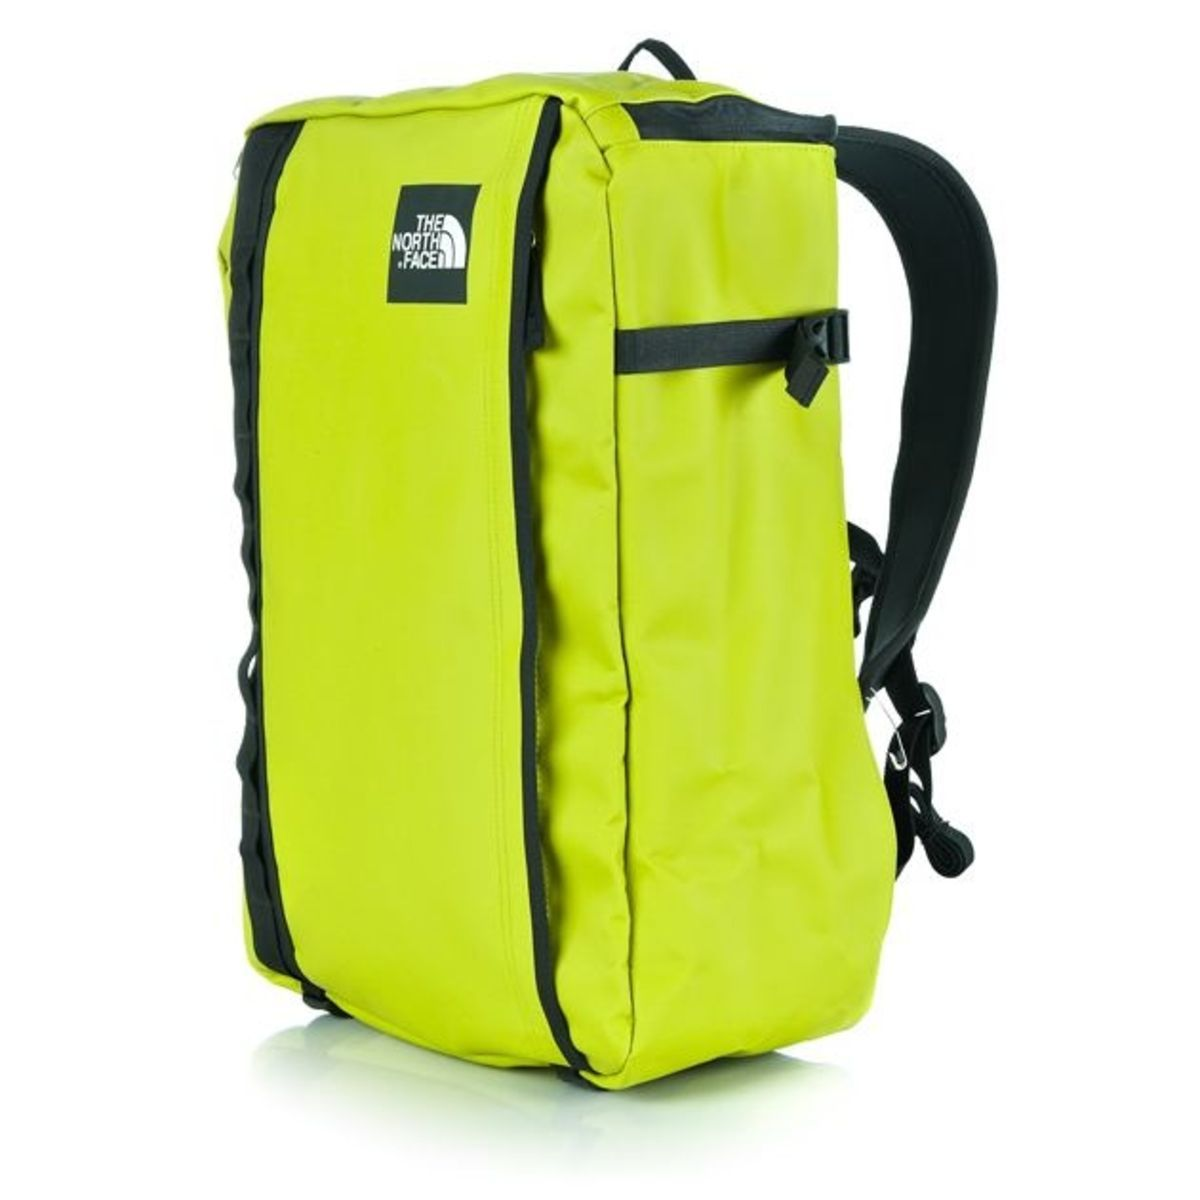 8b430b6977e0679e1d8298c3c0f9ae5b the north face bags the north face base camp fuse box duffle north face base camp fuse box backpack at reclaimingppi.co